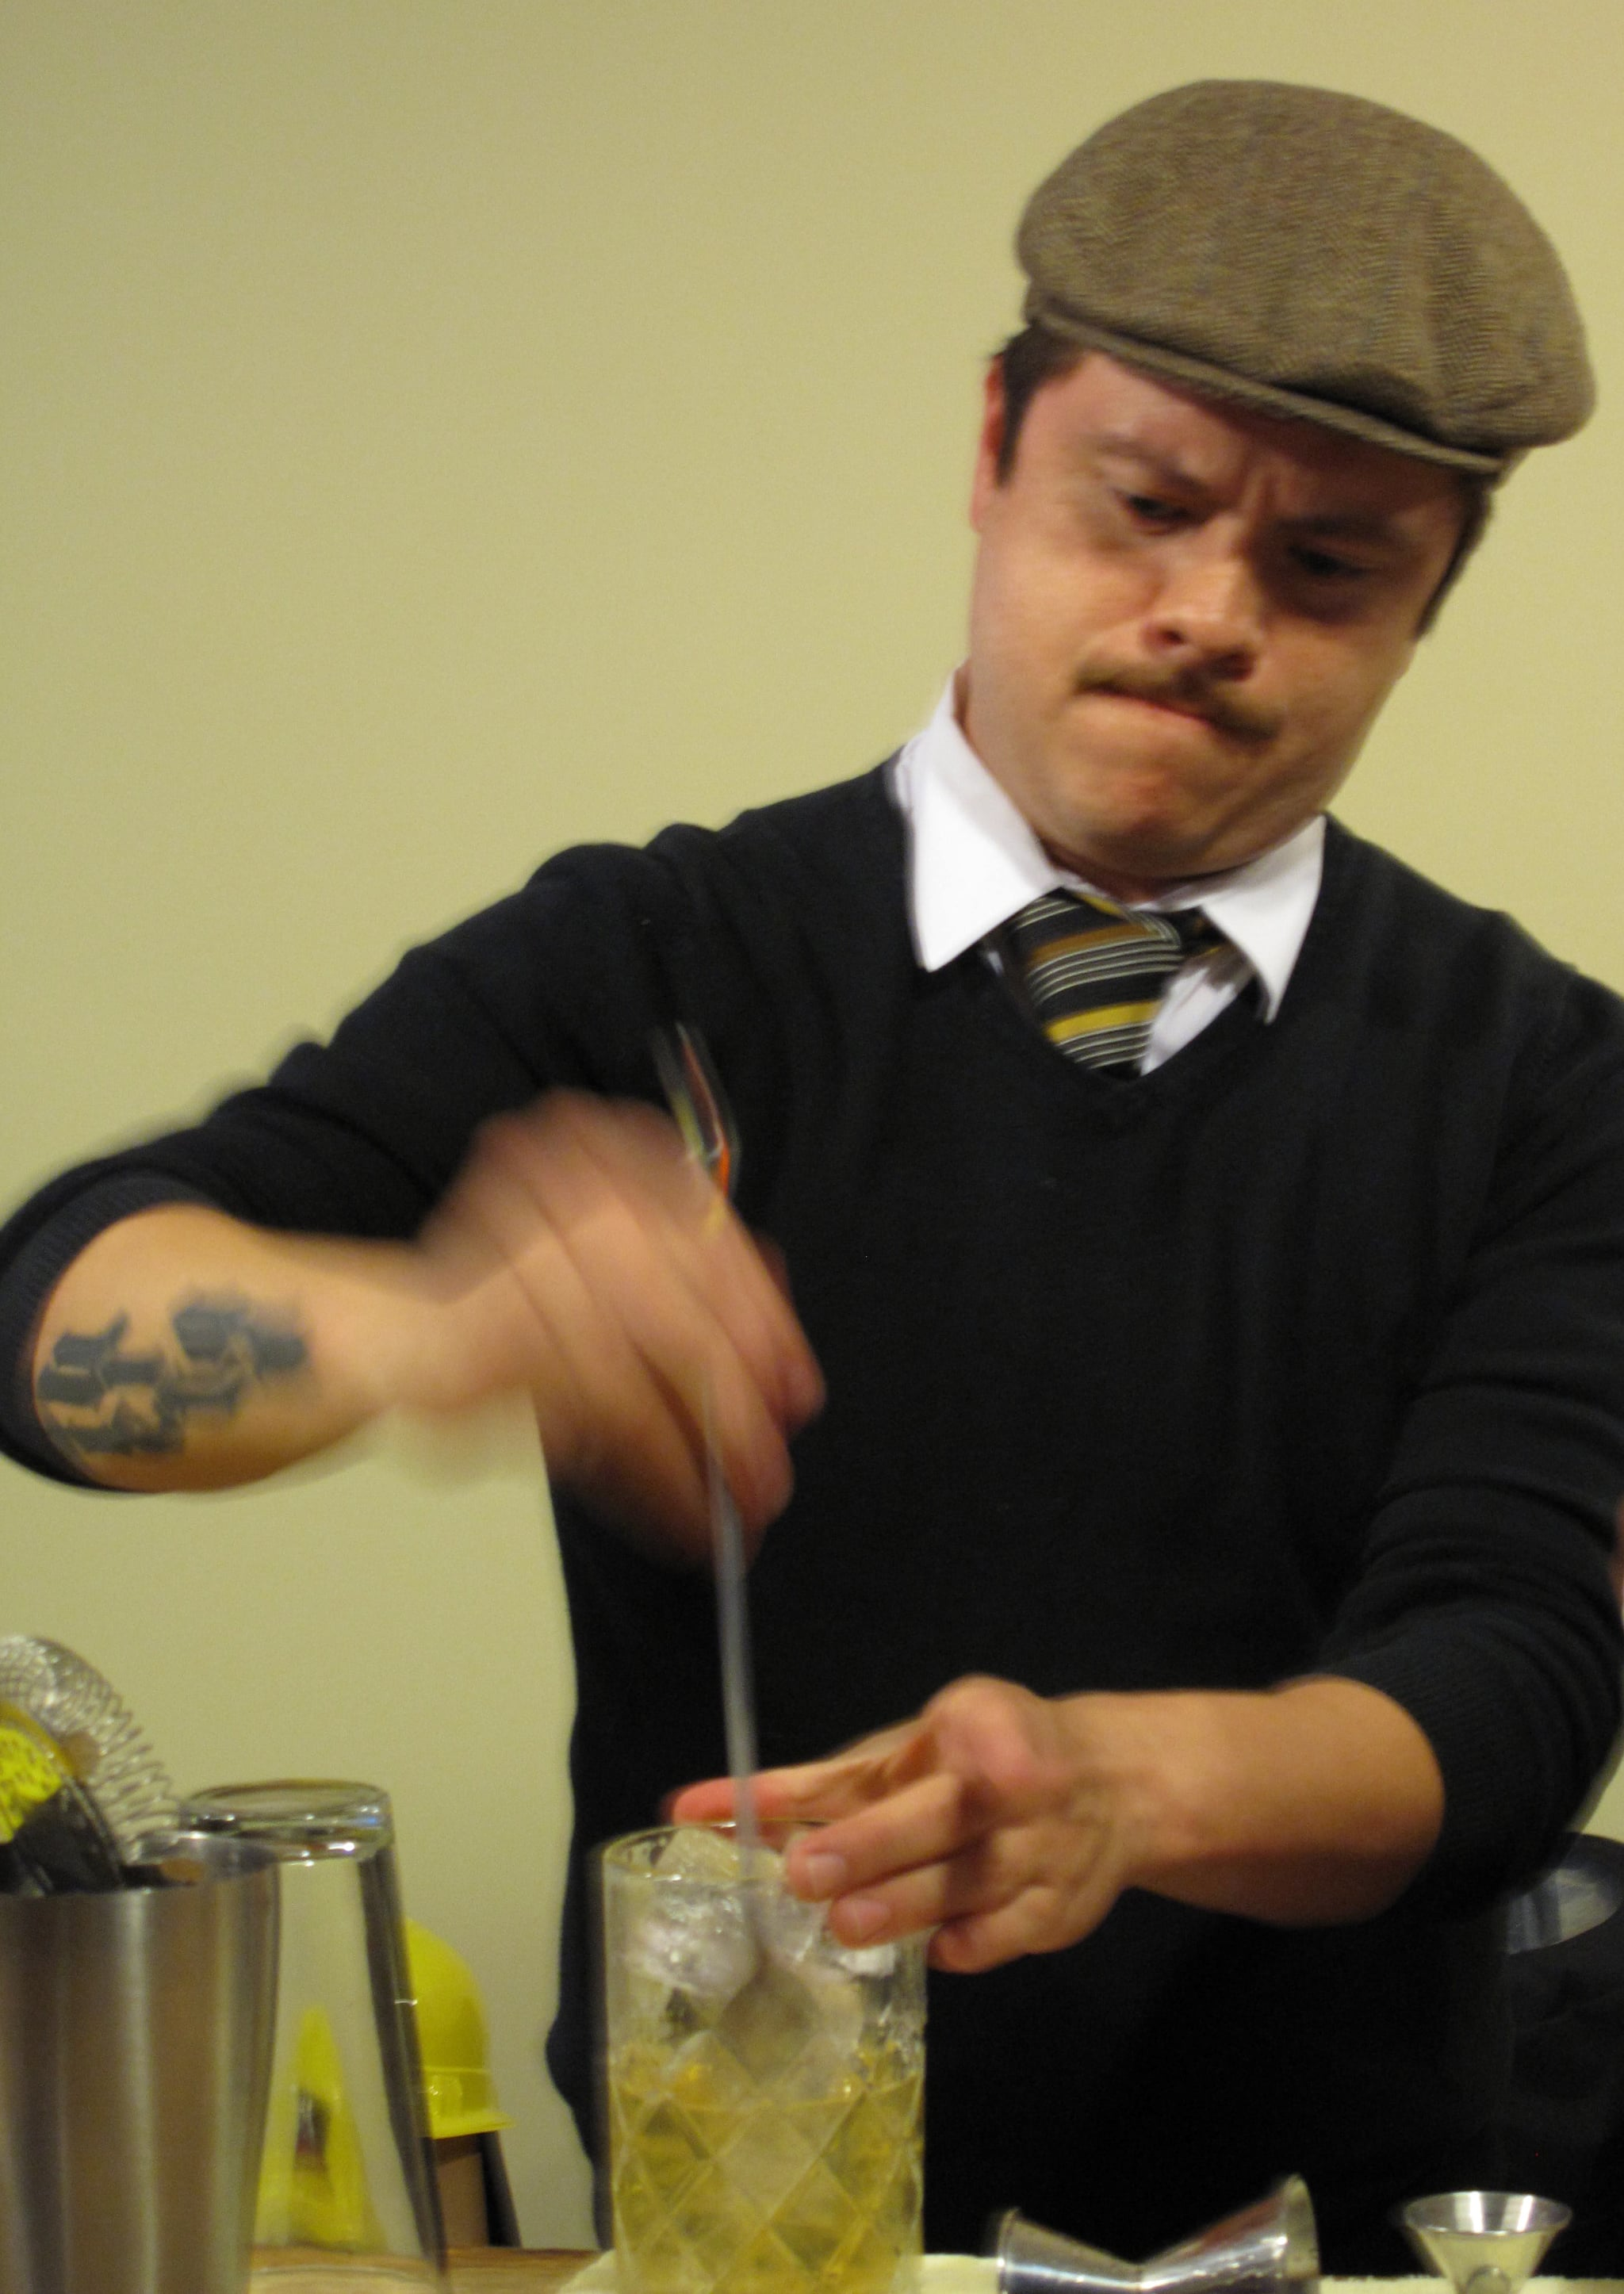 Plymouth and Beefeater brand ambassador Erick Castro whips up a Claridge cocktail with his bar spoon.